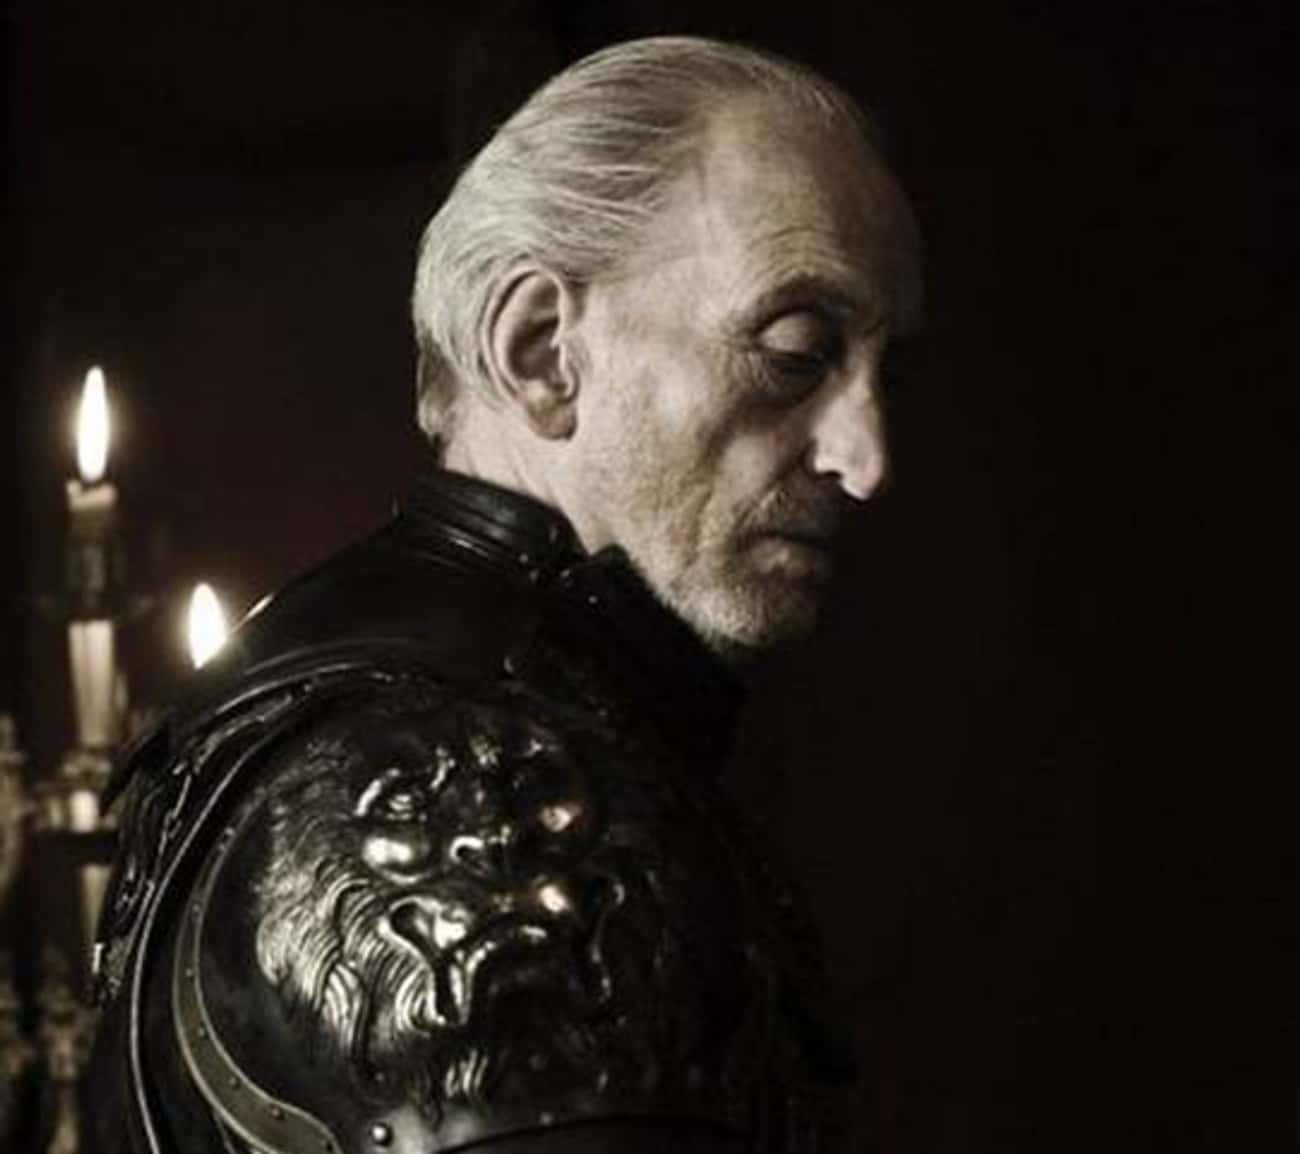 Tywin Lannister Orchestrated The Red Wedding